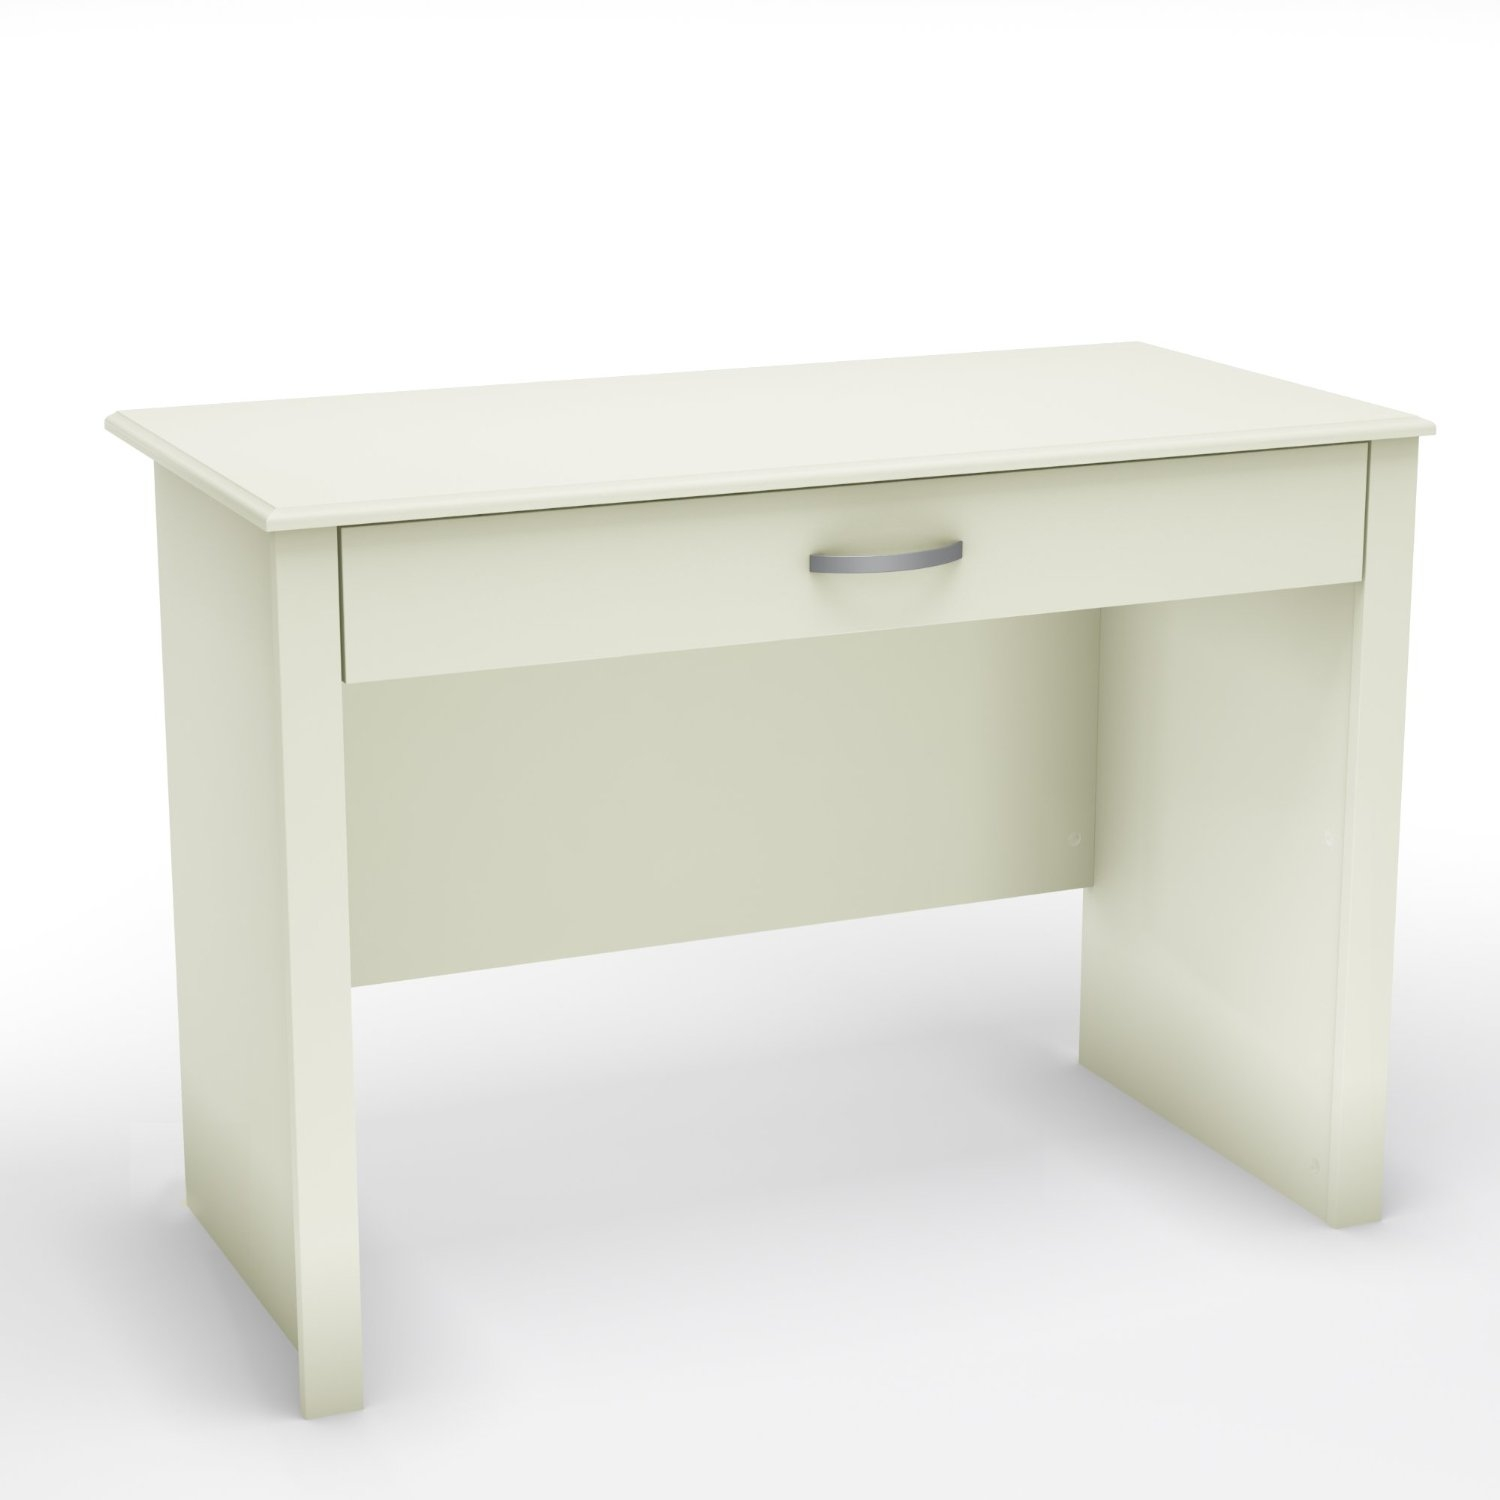 This Contemporary White Laptop Computer Desk features an unfettered design and clean shapes to give the home office a stylized minimalist look. The work surface of this desk is a perfect size for laptop computers, but still large enough to accommodate desktop computers. The sliding keyboard tray is a practical feature, and everything tucks away neatly thanks to the tray's folding front. It is made of recycled CARB compliant particle panels. Metal glides. It has to be assembled by two adults.